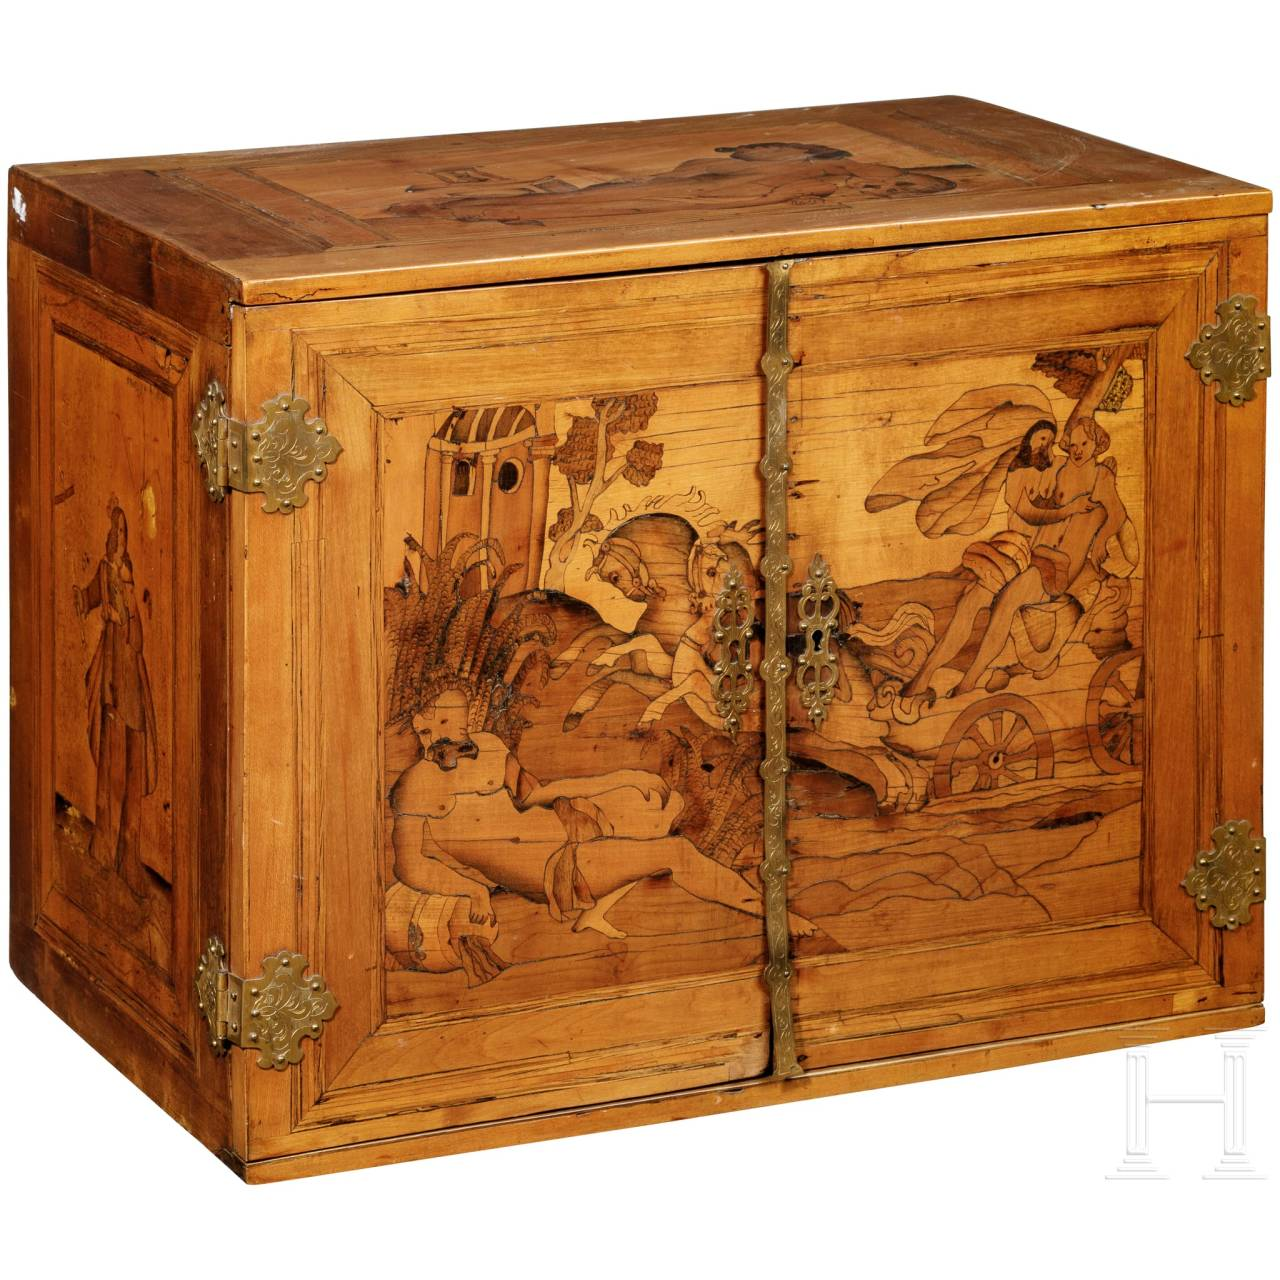 A South German cabinet case with marquetry decoration, probably Innsbruck, circa 1620